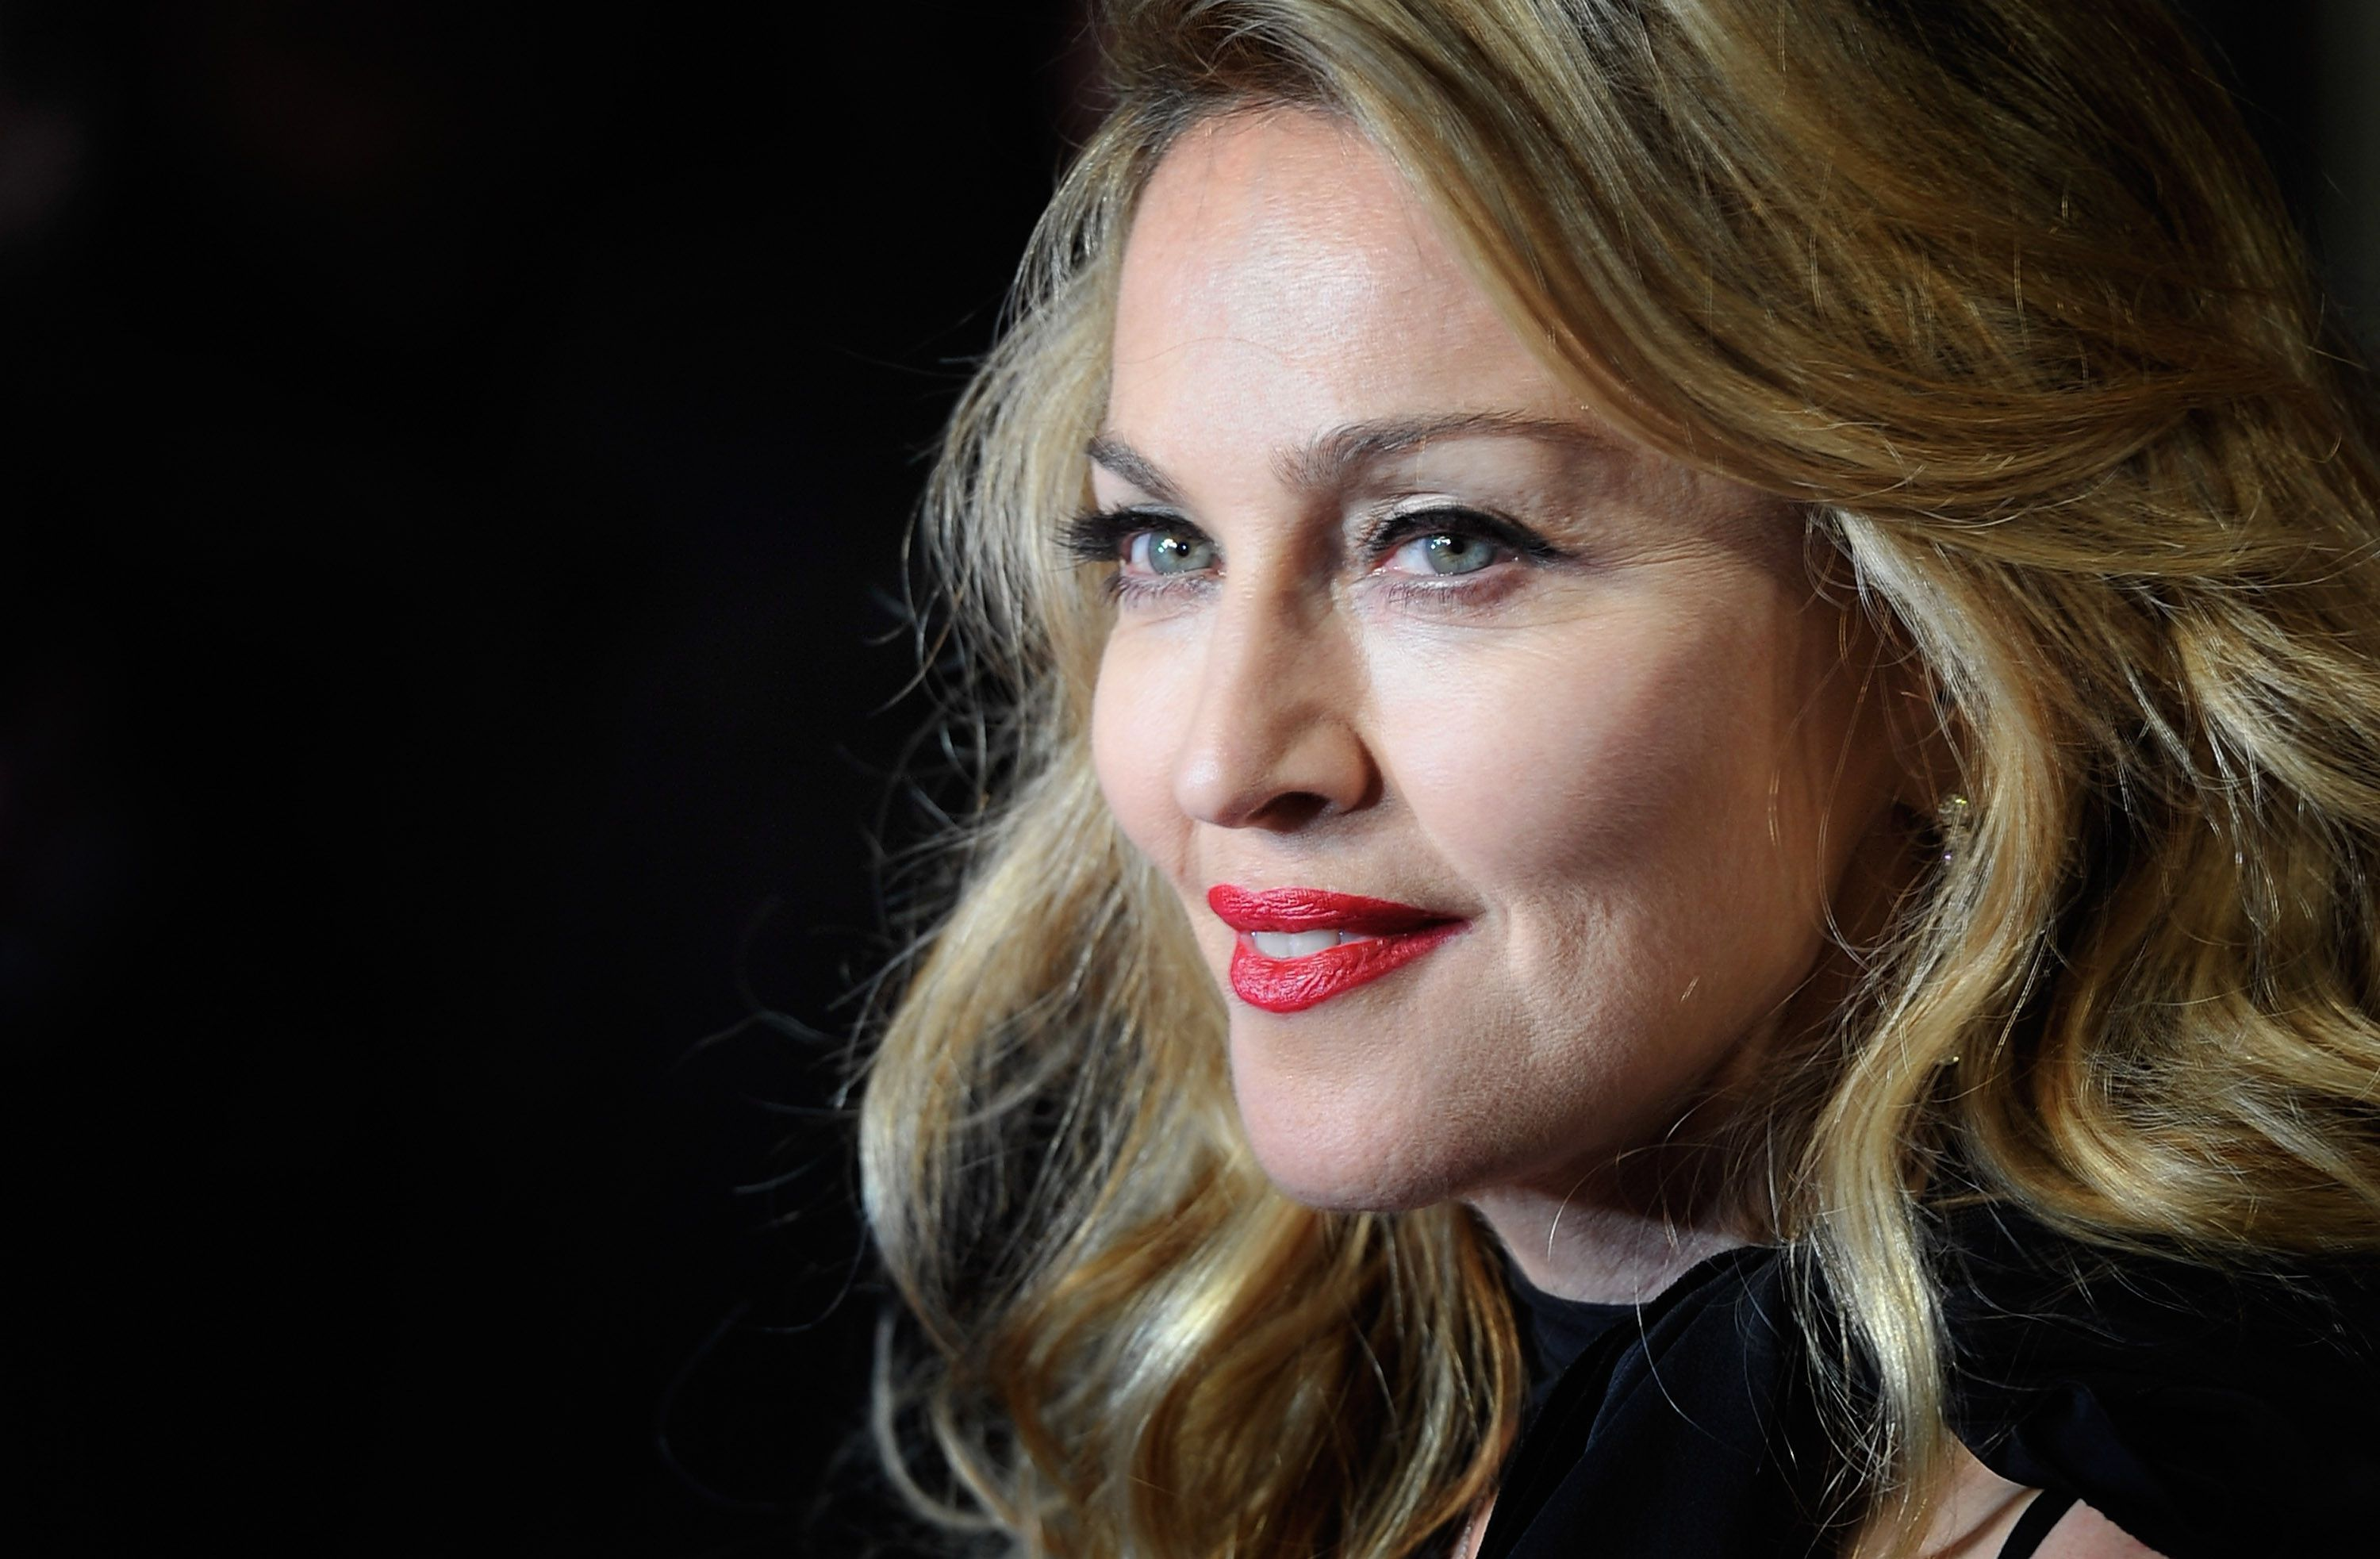 Madonna wallpapers images photos pictures backgrounds - Madonna hd images ...